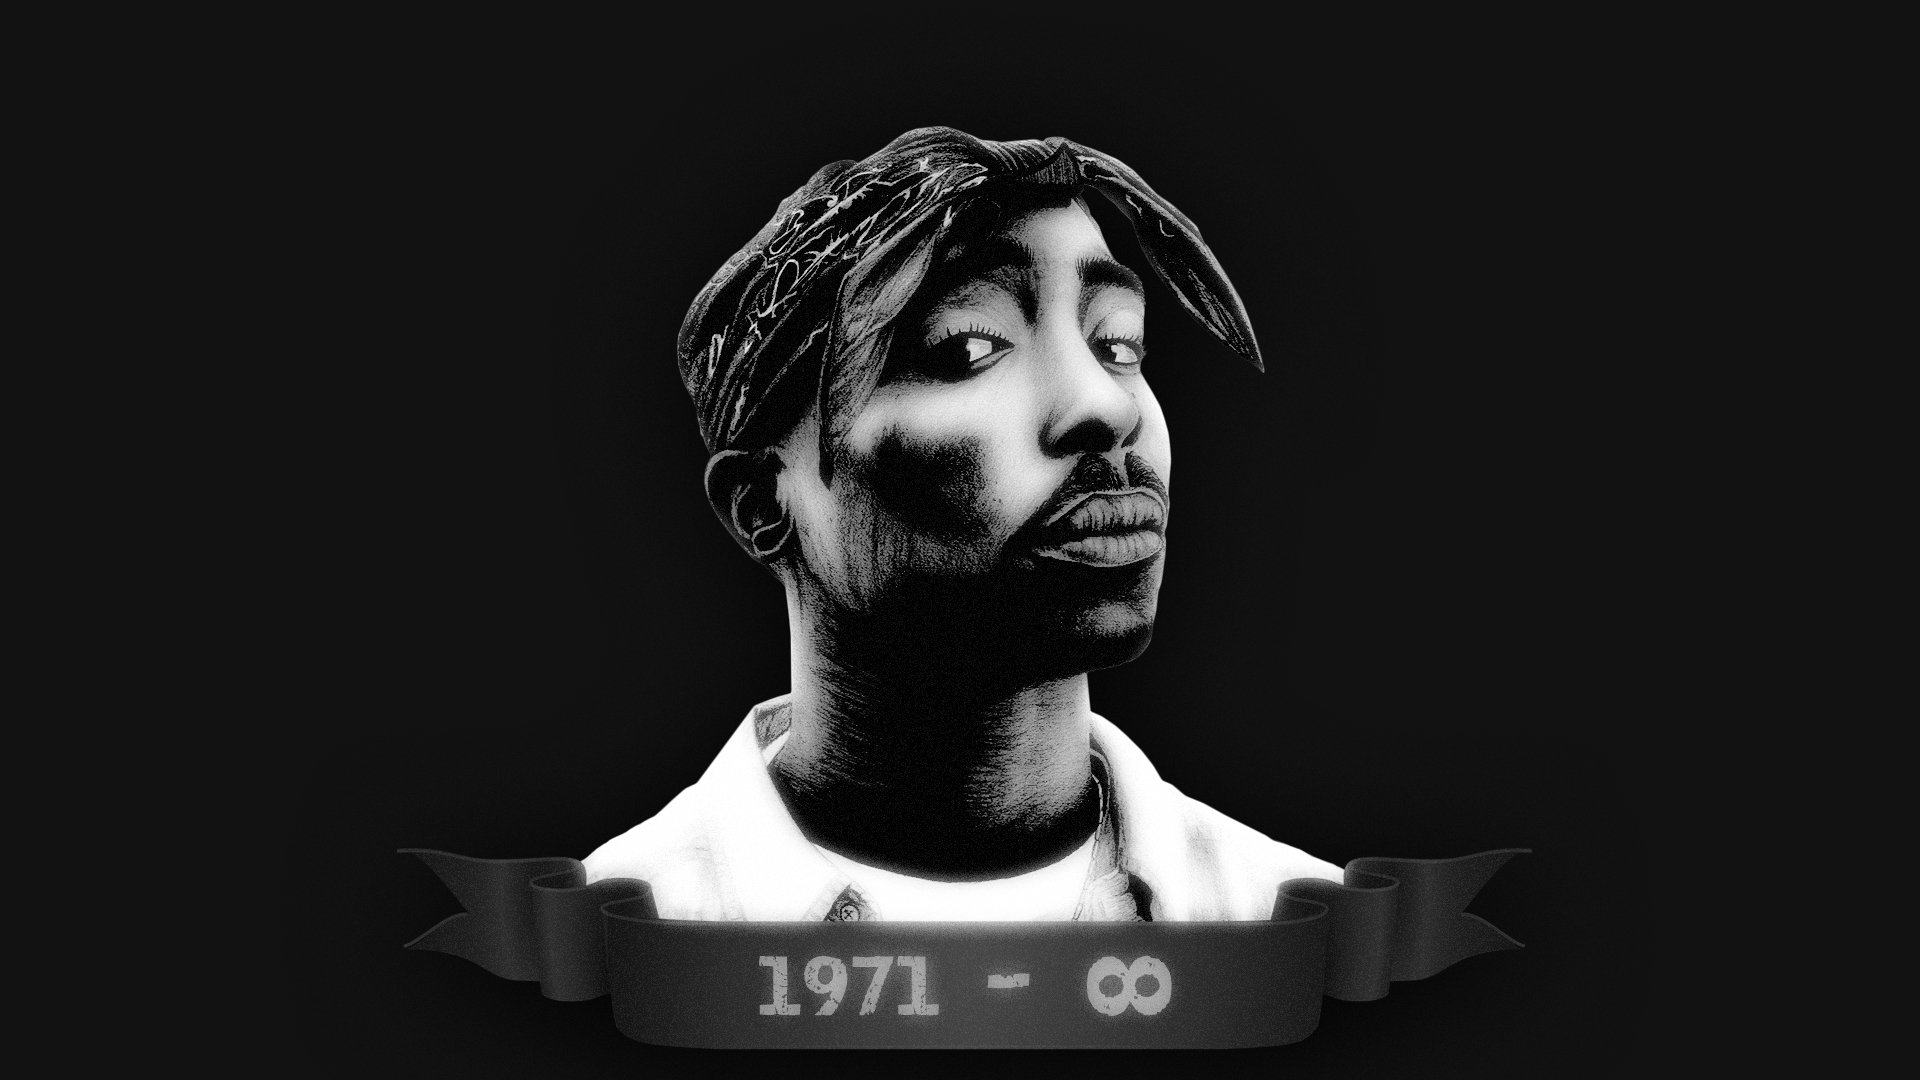 2pac Full HD Wallpaper And Background Image